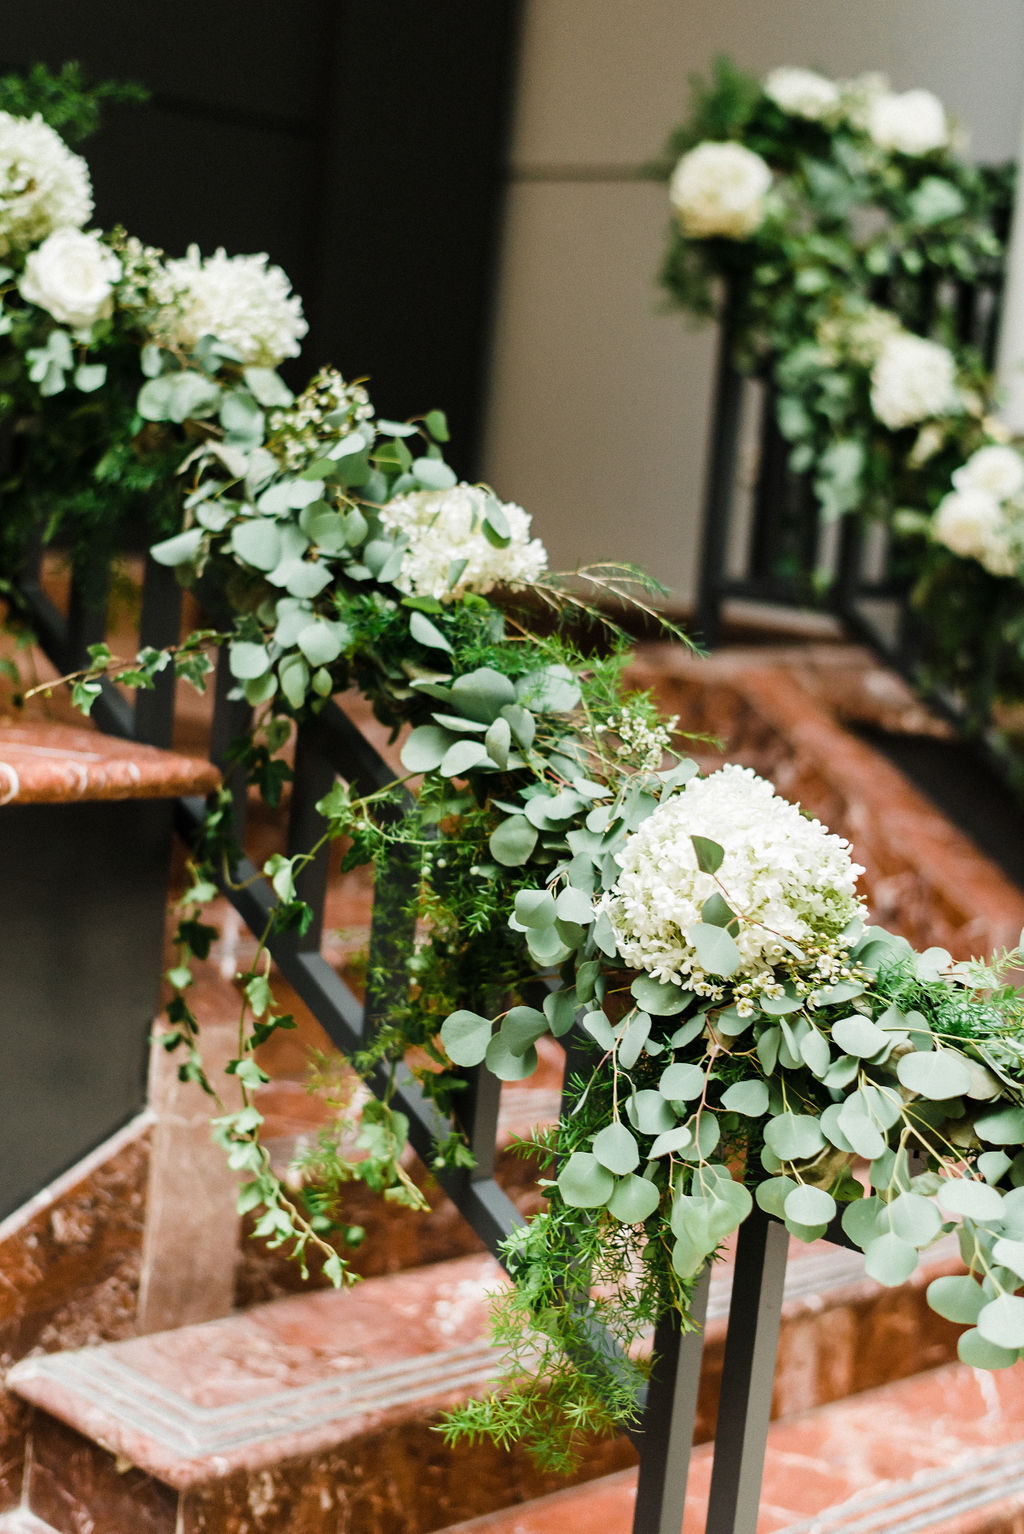 Ruth L. stairwell entrance covered with green and white florals at Melanie & Tyler's wedding - Pearl Weddings & Events